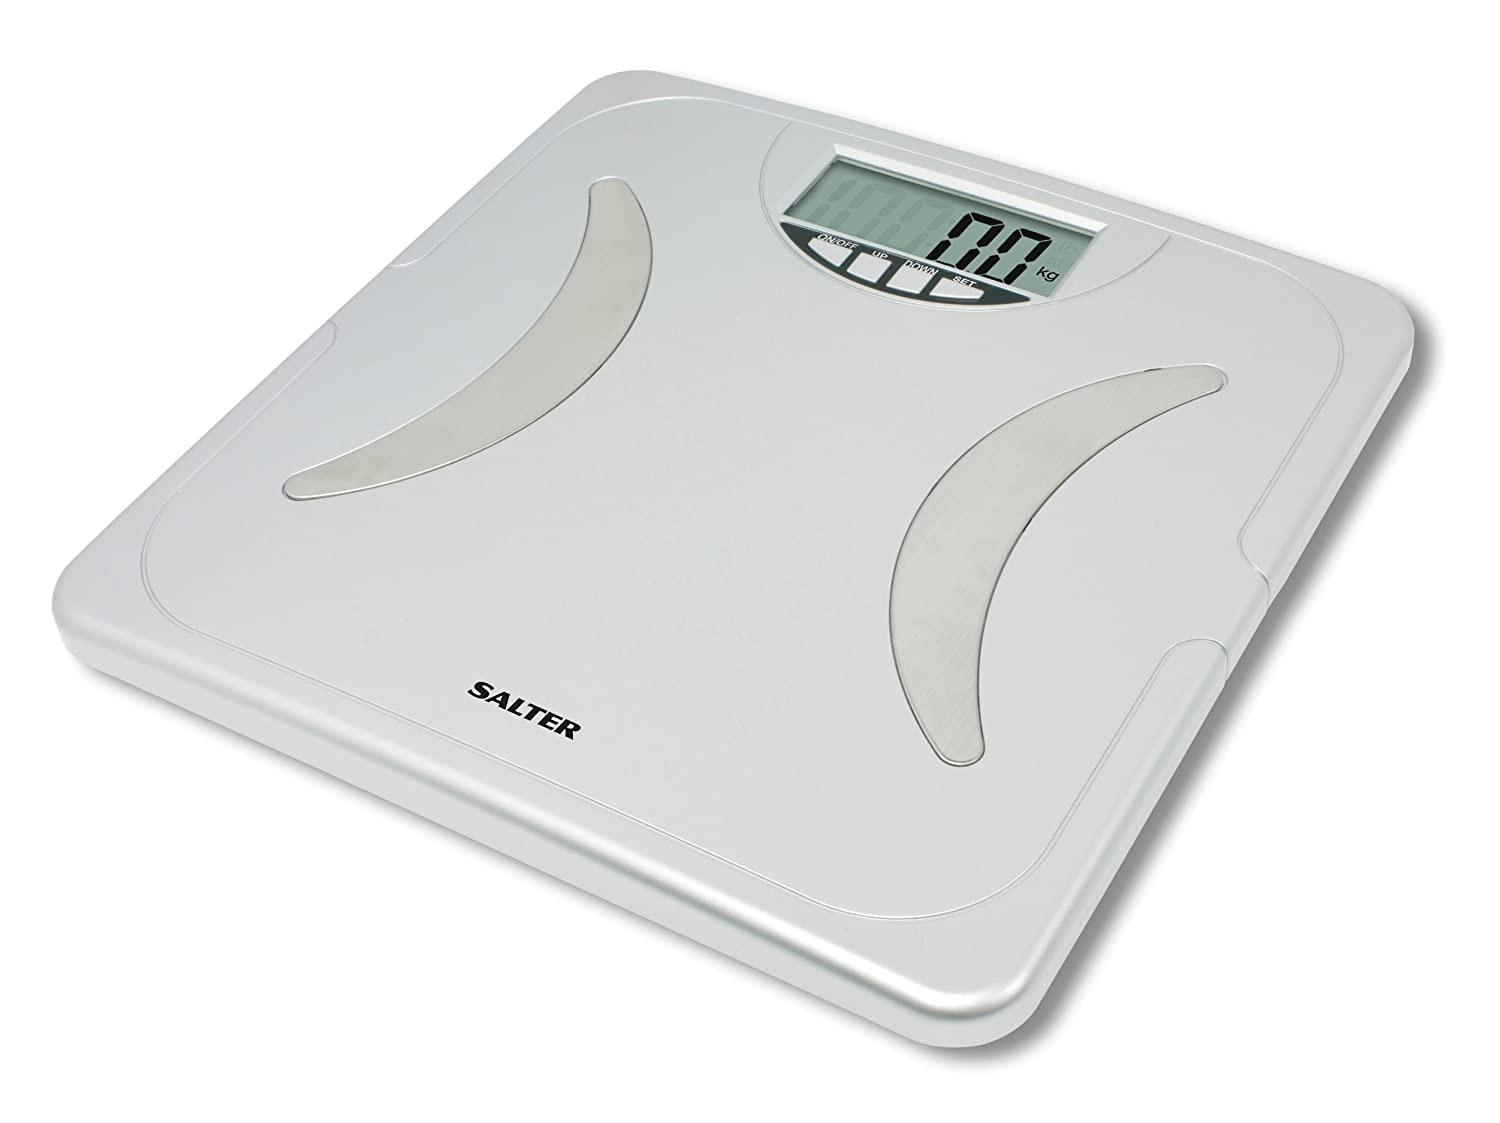 Salter 9114 Body Fat And Body Water Analyser Scale Amazon